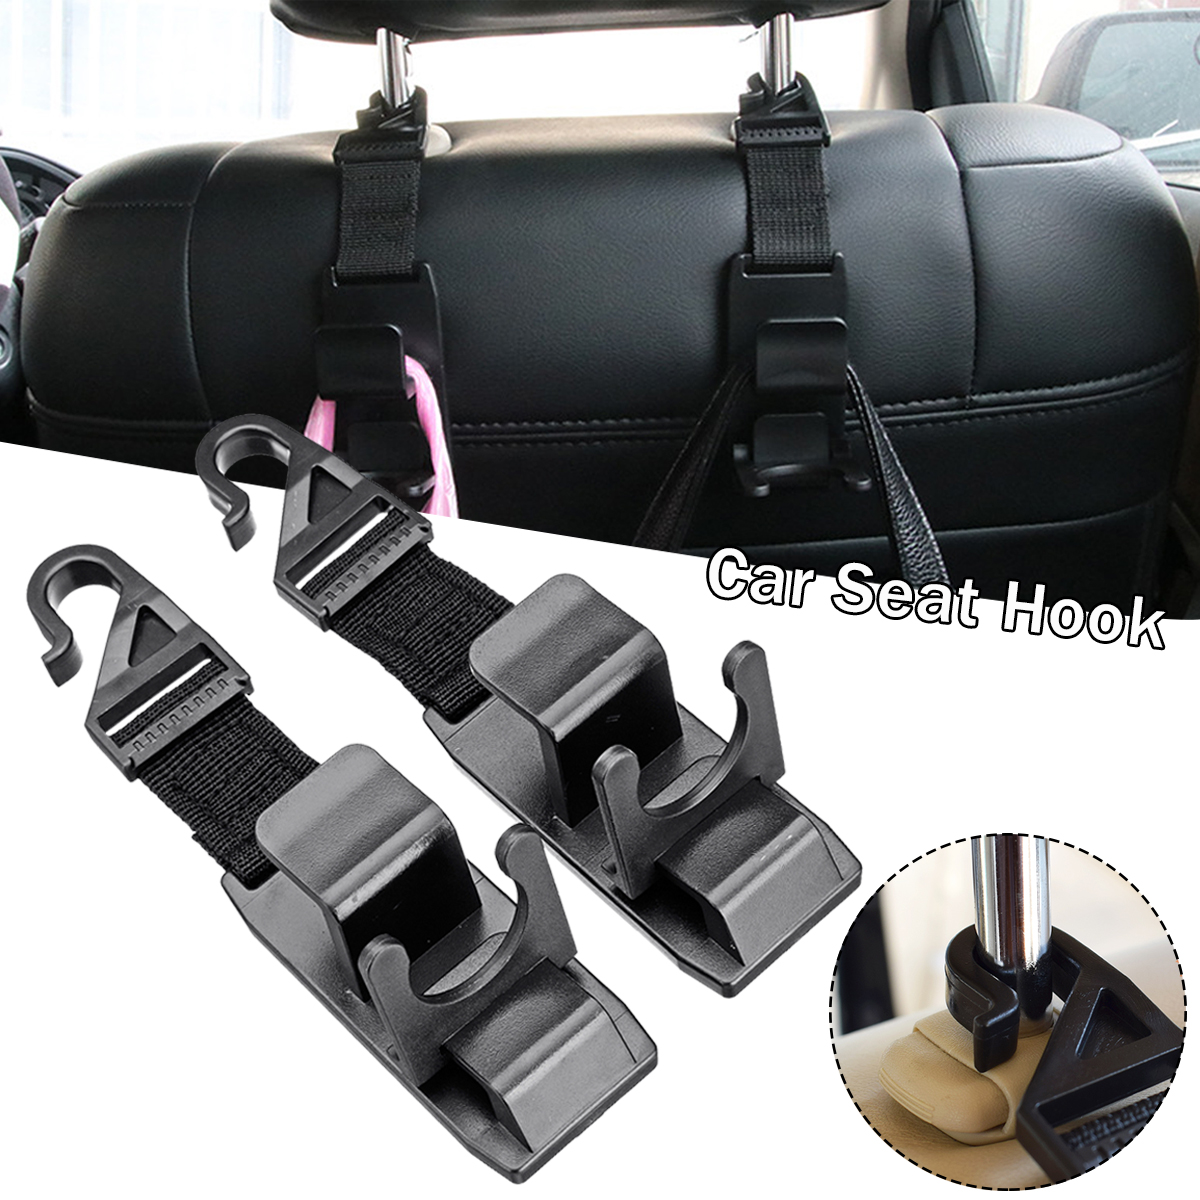 2pcs Auto Car Seat Truck Coat Hook Purse Bag Hanger Hanging Organizer Holder